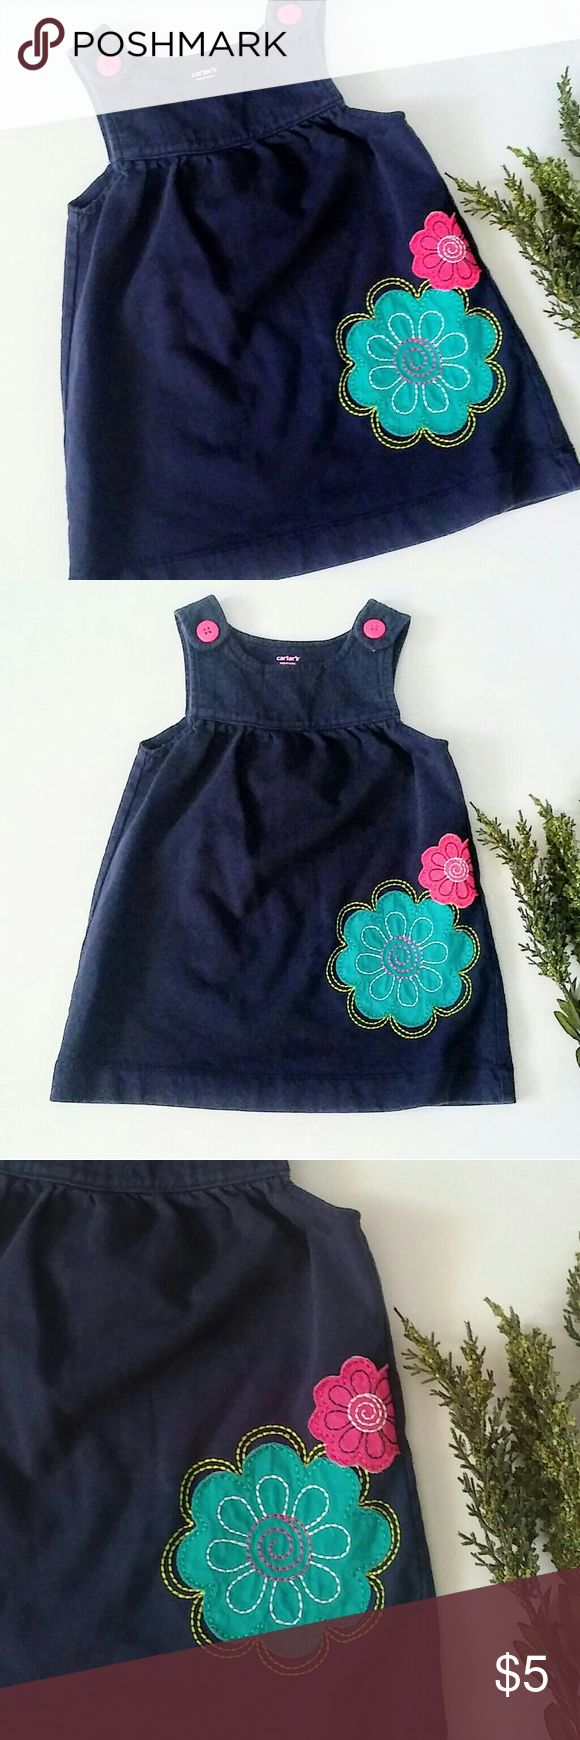 🌟New listing🌟Carter's jumper dress (12mo) navy Great used condition. Pair with a long sleeve onsie and tights! Bundle to save! Carter's Dresses